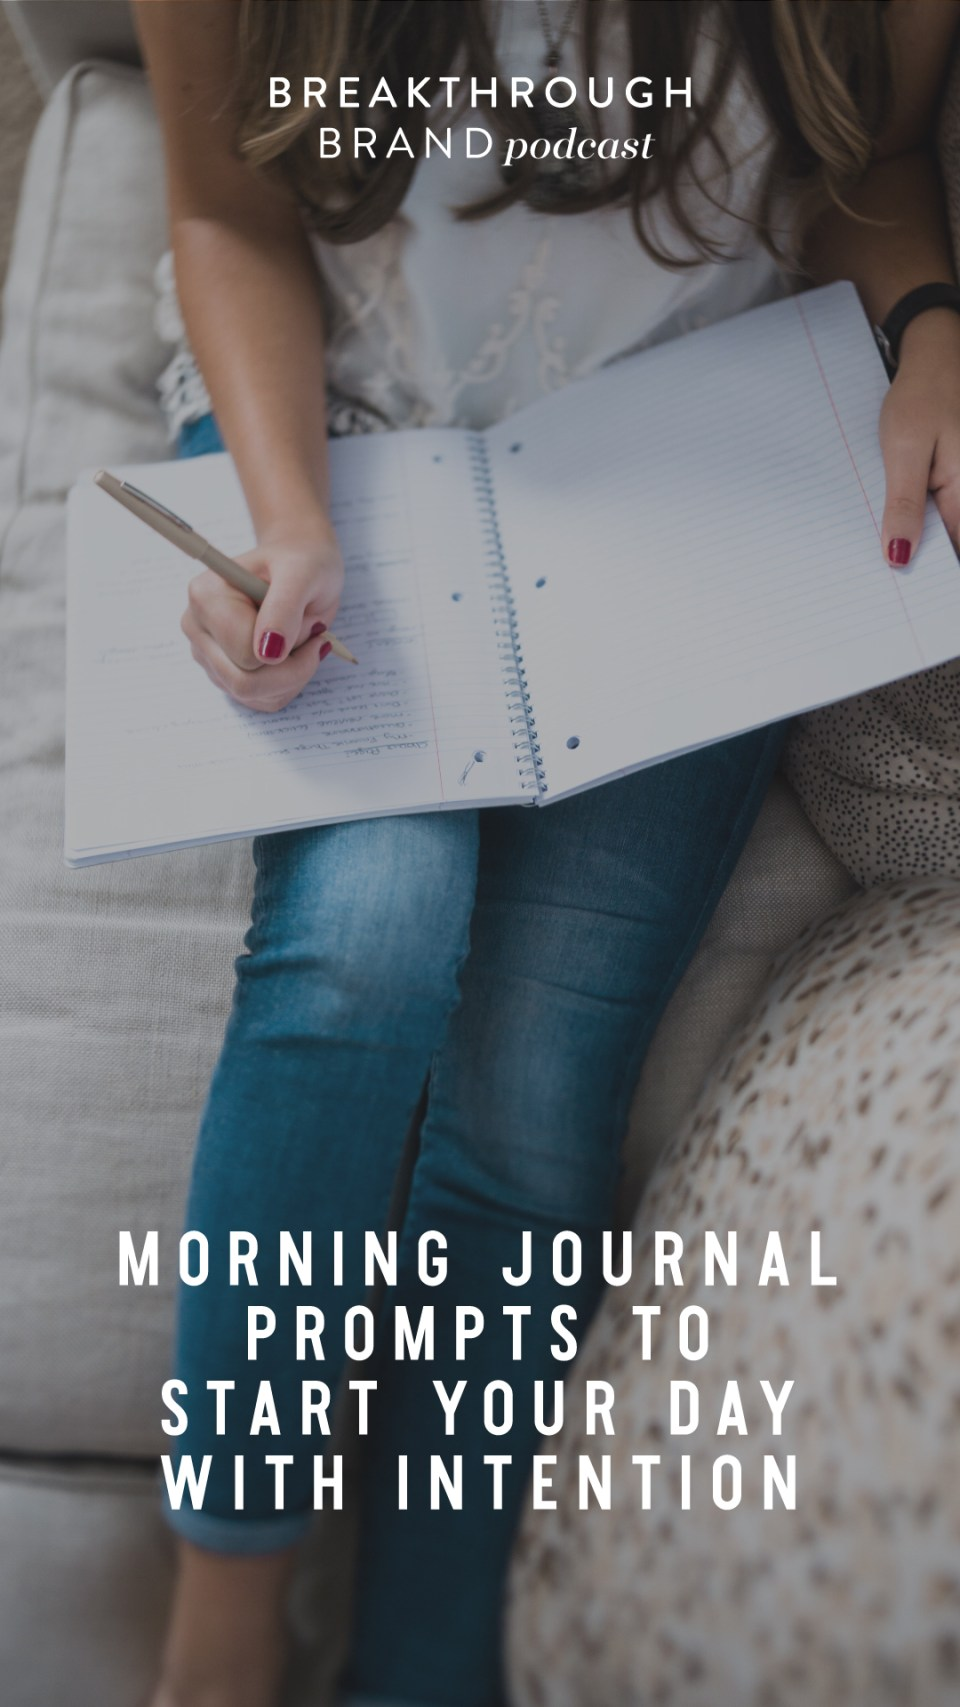 Morning Journaling Prompts to help you move throughout your day with more intention. Breakthrough Brand - Elizabeth McCravy